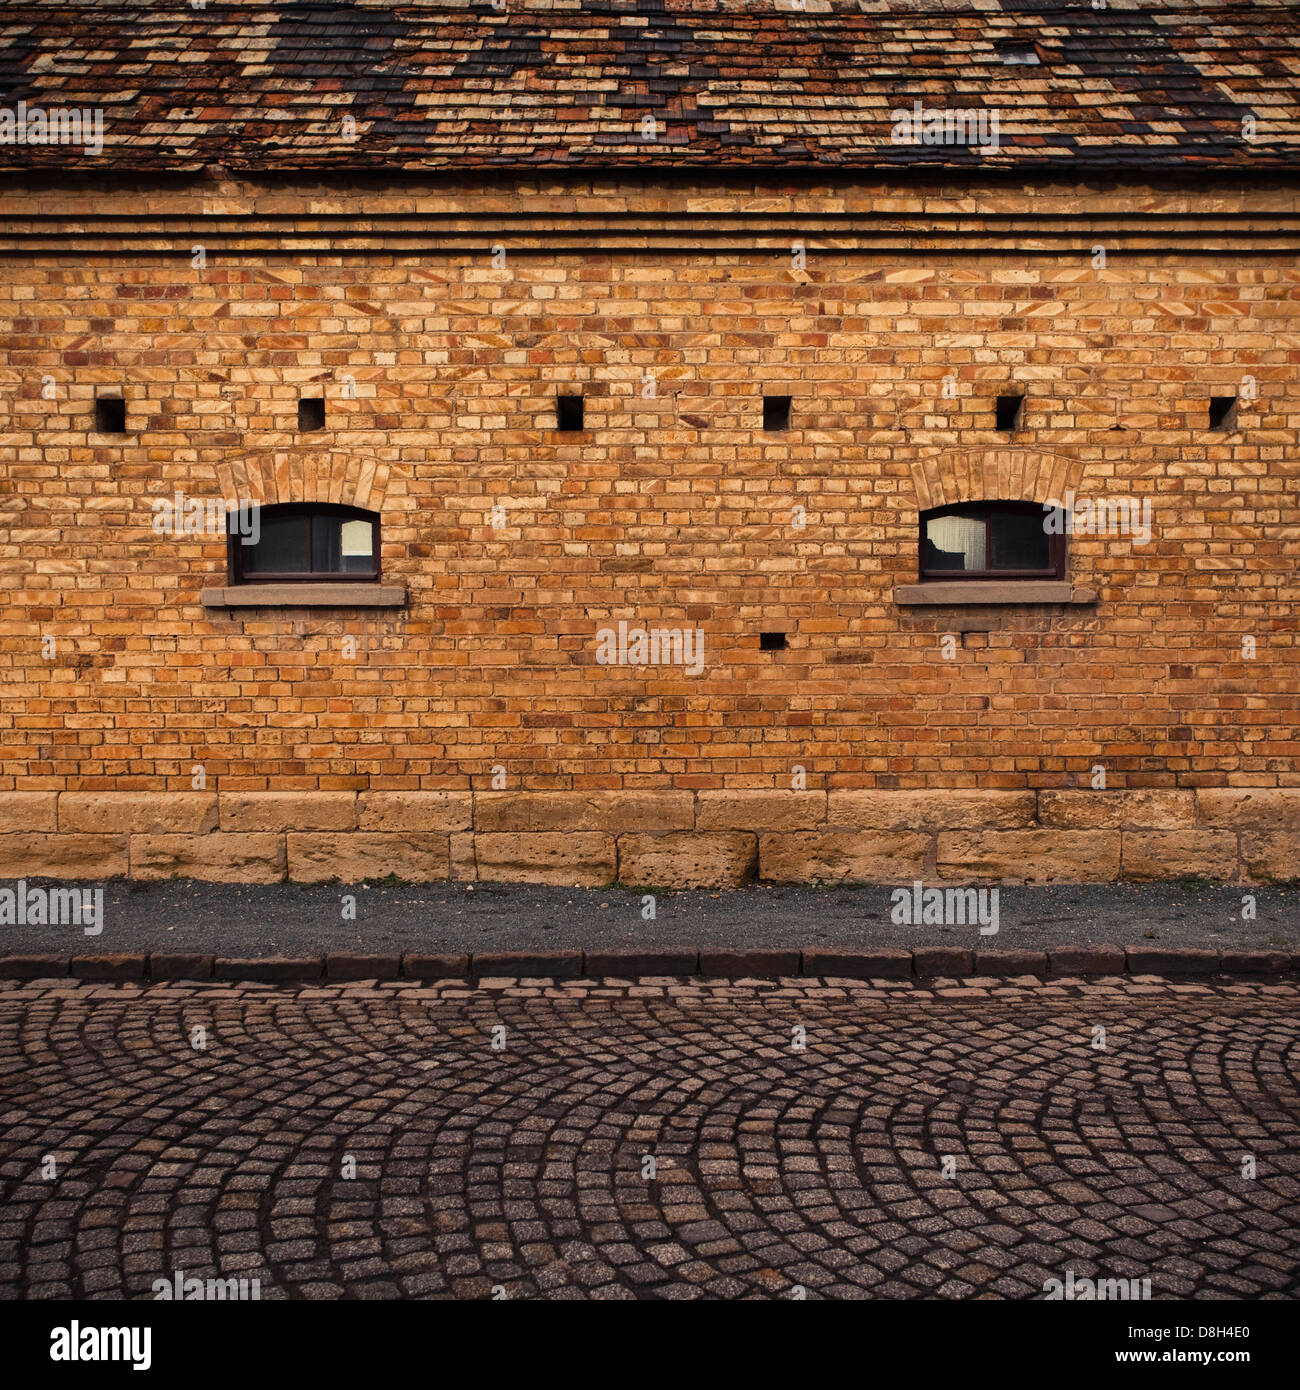 Detail of a brick wall with windows - Stock Image